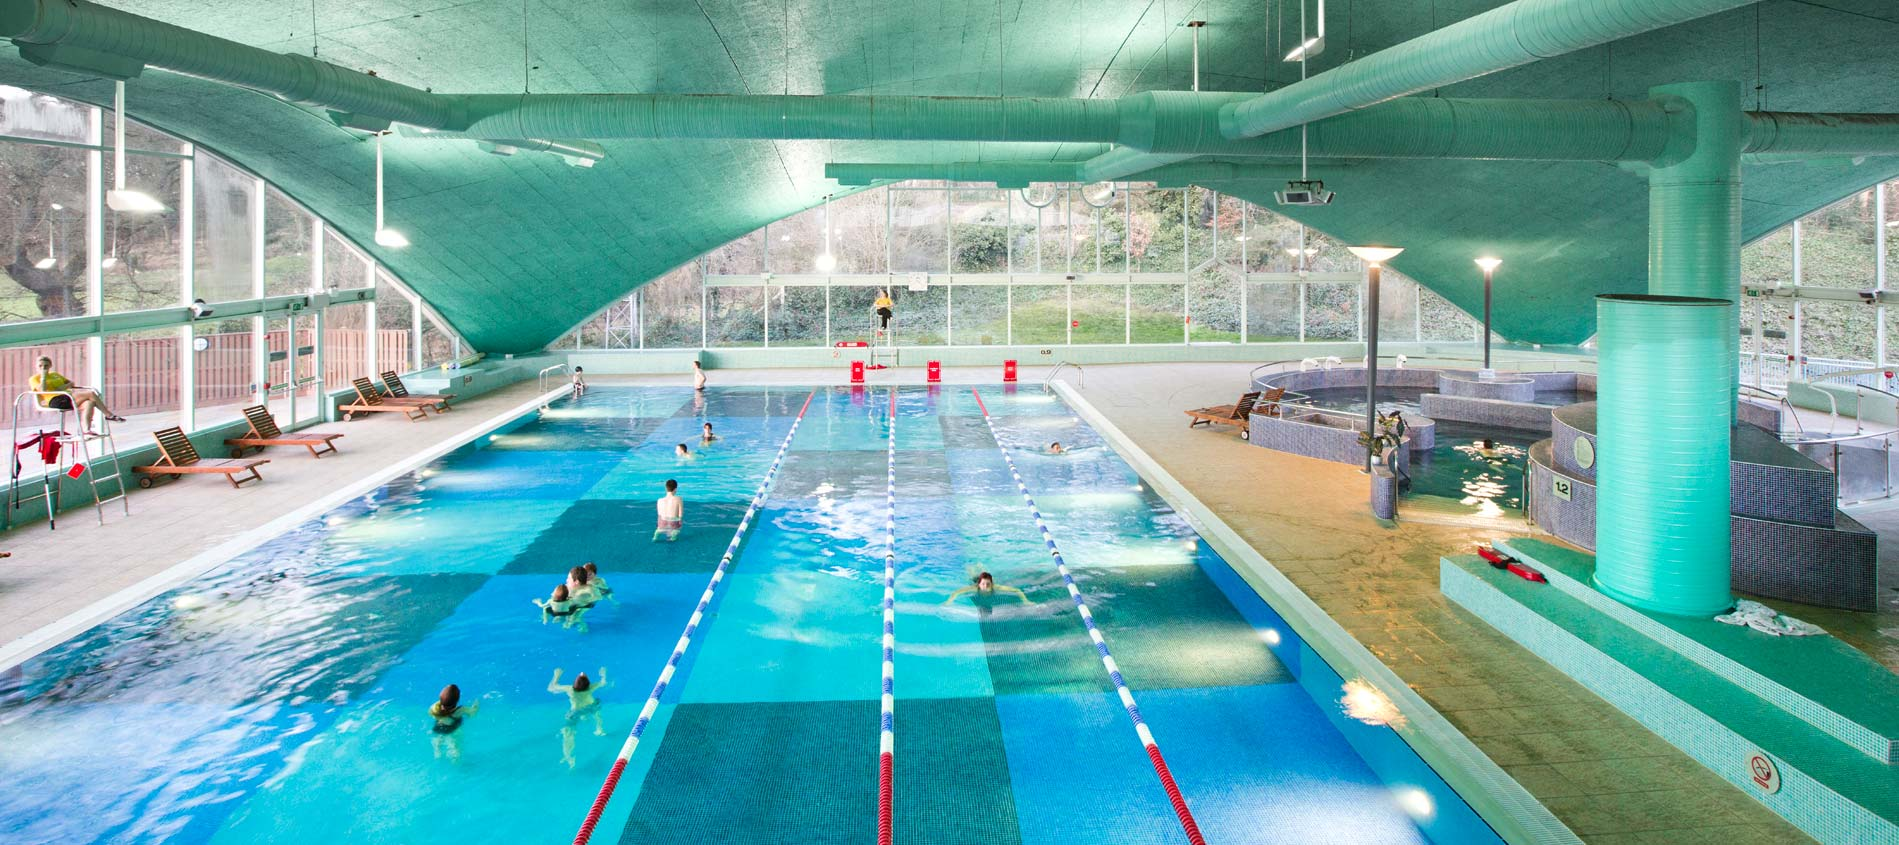 A Vip Virgin Active Club Pass For A Family Of Four To Use The Facilities As Vip Guests At Virgin